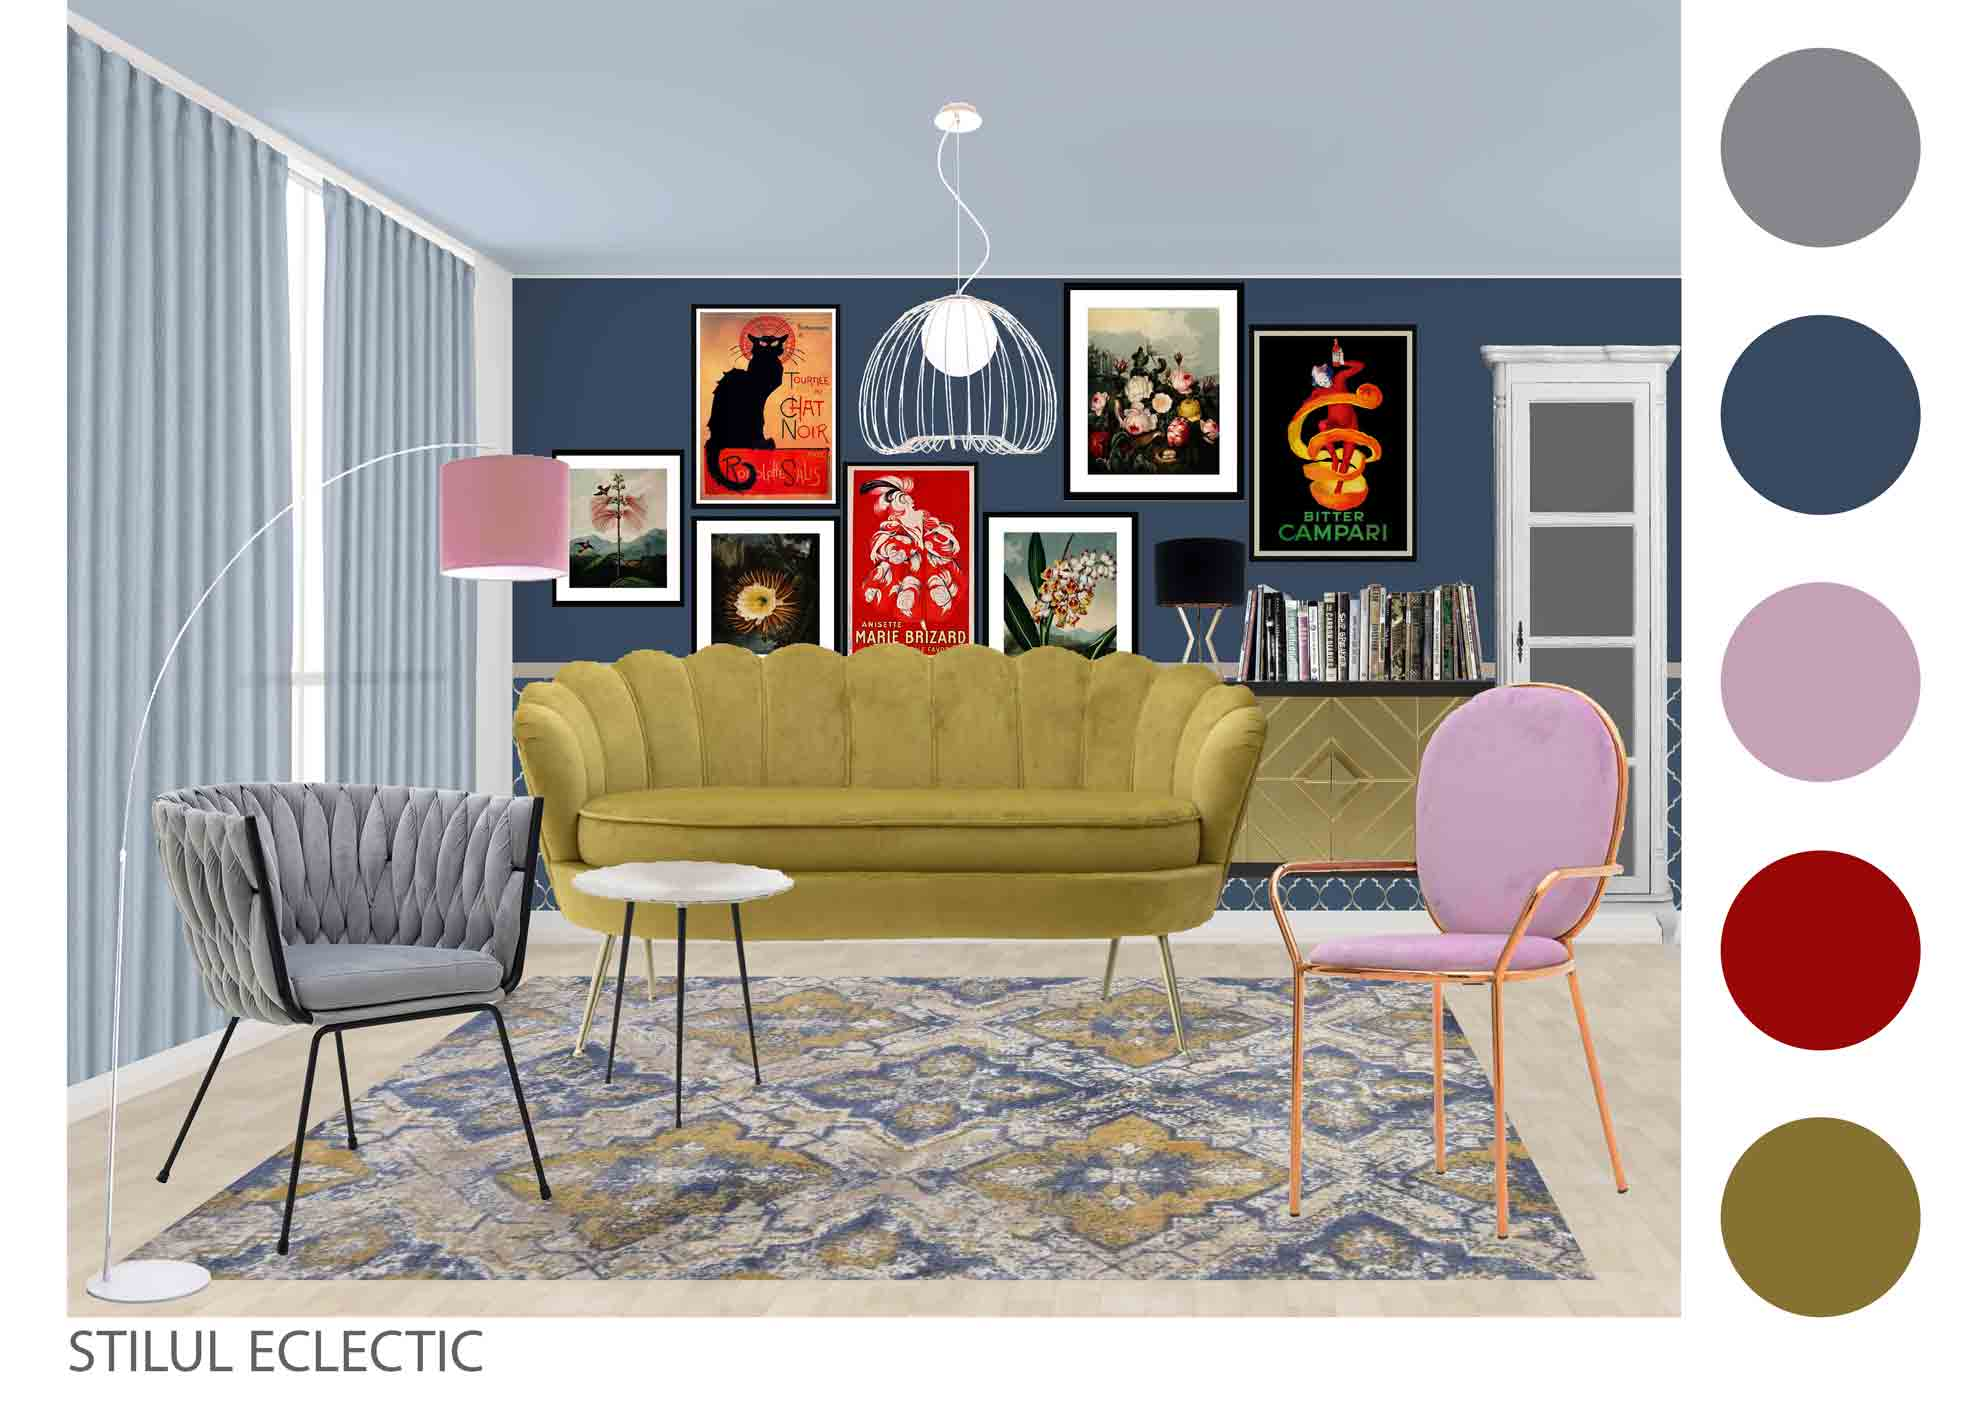 living stilul eclectic